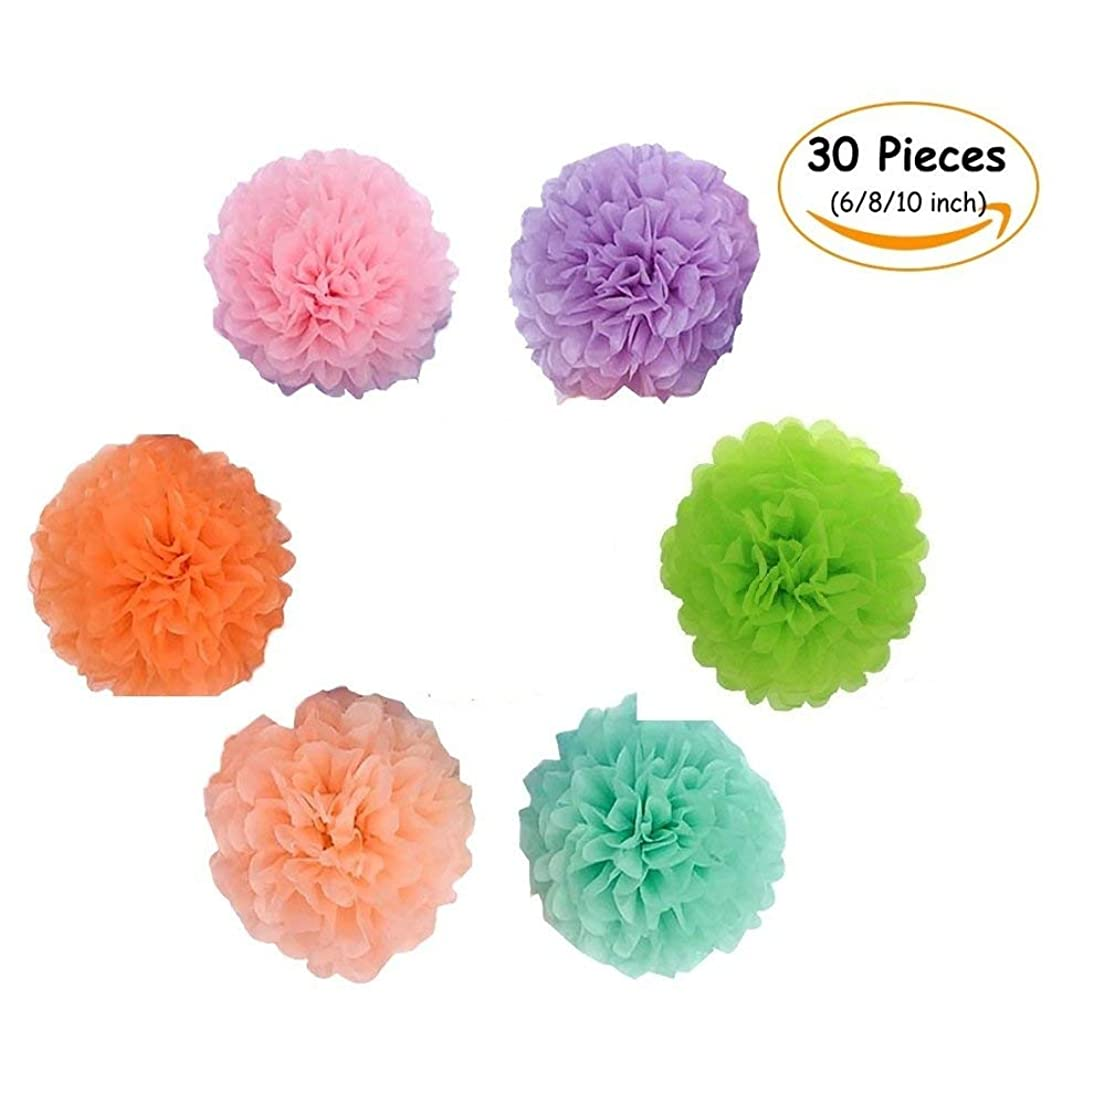 Paper Pom Poms, 30pcs of 6, 8, 10Inch, Tissue Hanging Paper Flowers Perfect for Wedding Decor Birthday Celebration Party Indoor Outdoor Decoration fjtbo4402735076